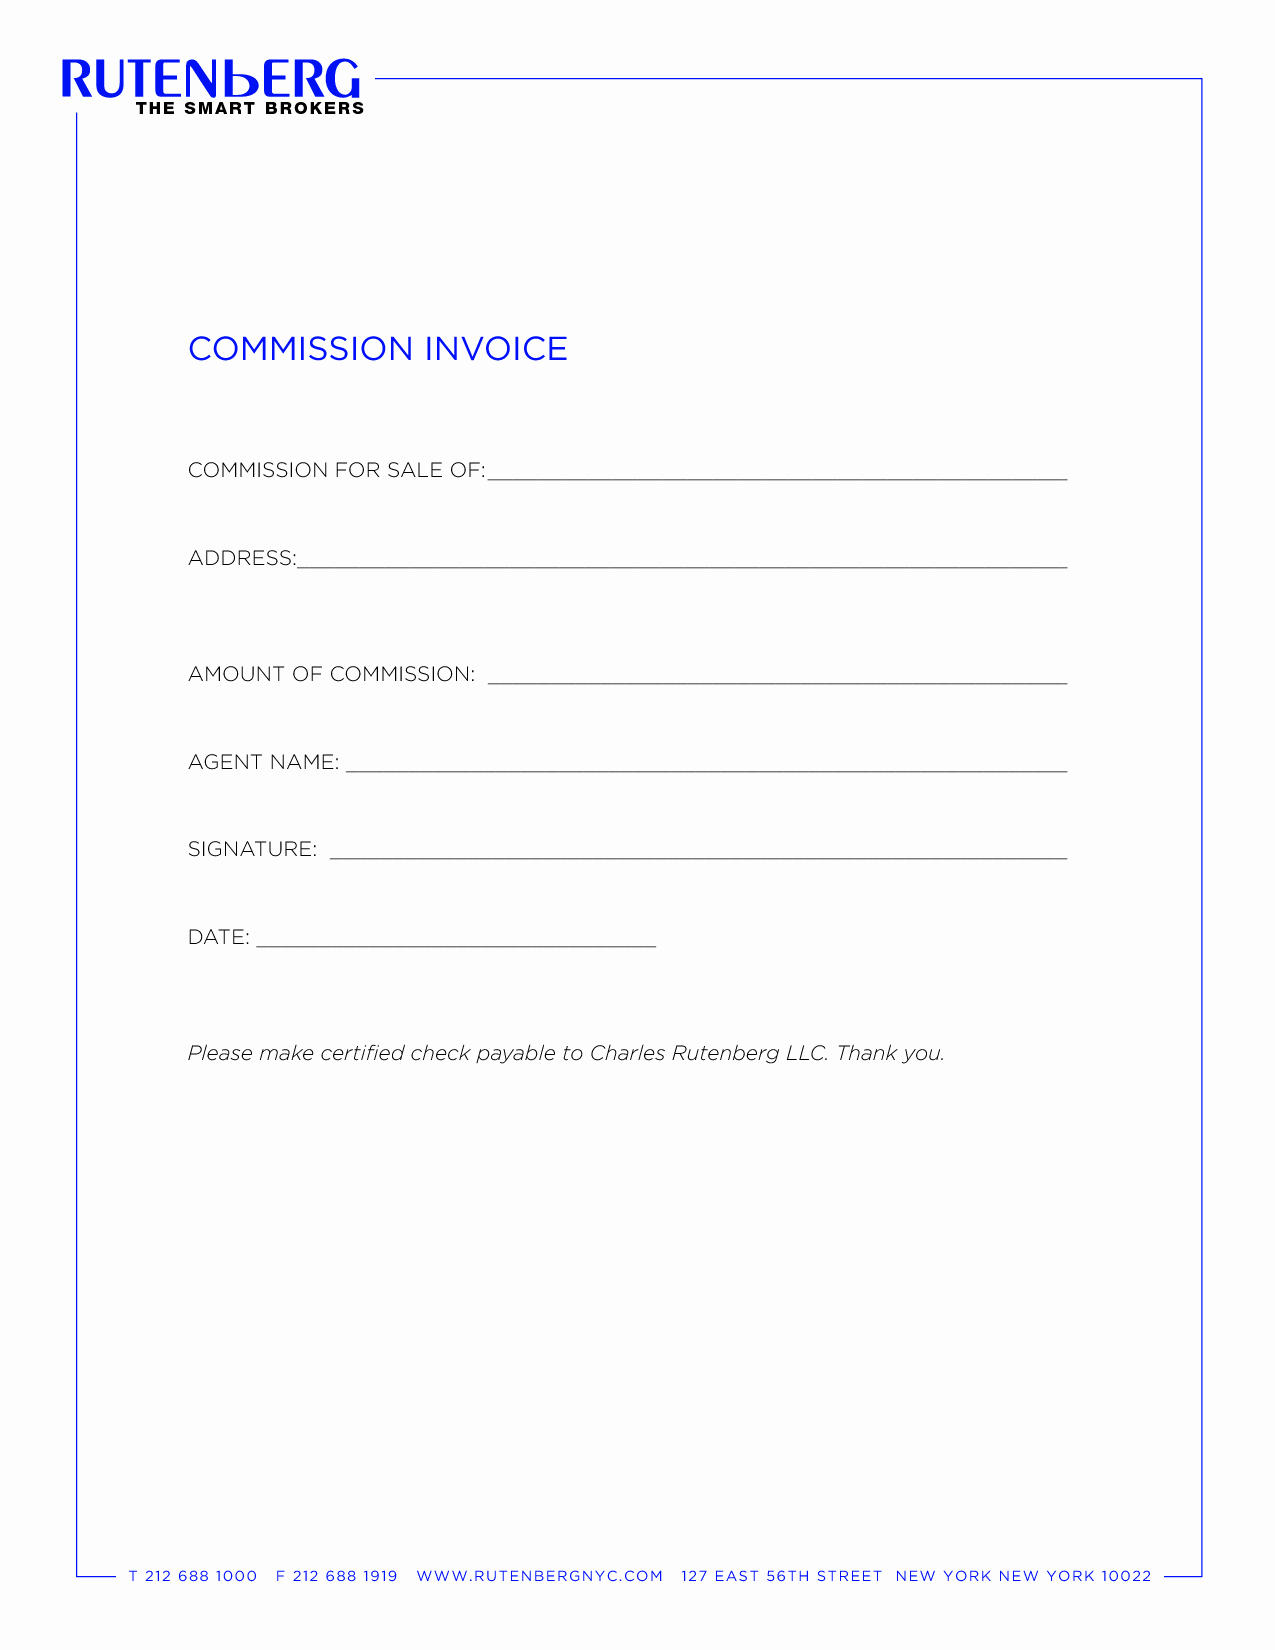 Real Estate Commission Invoice Template Fresh Elegant Invoice Template